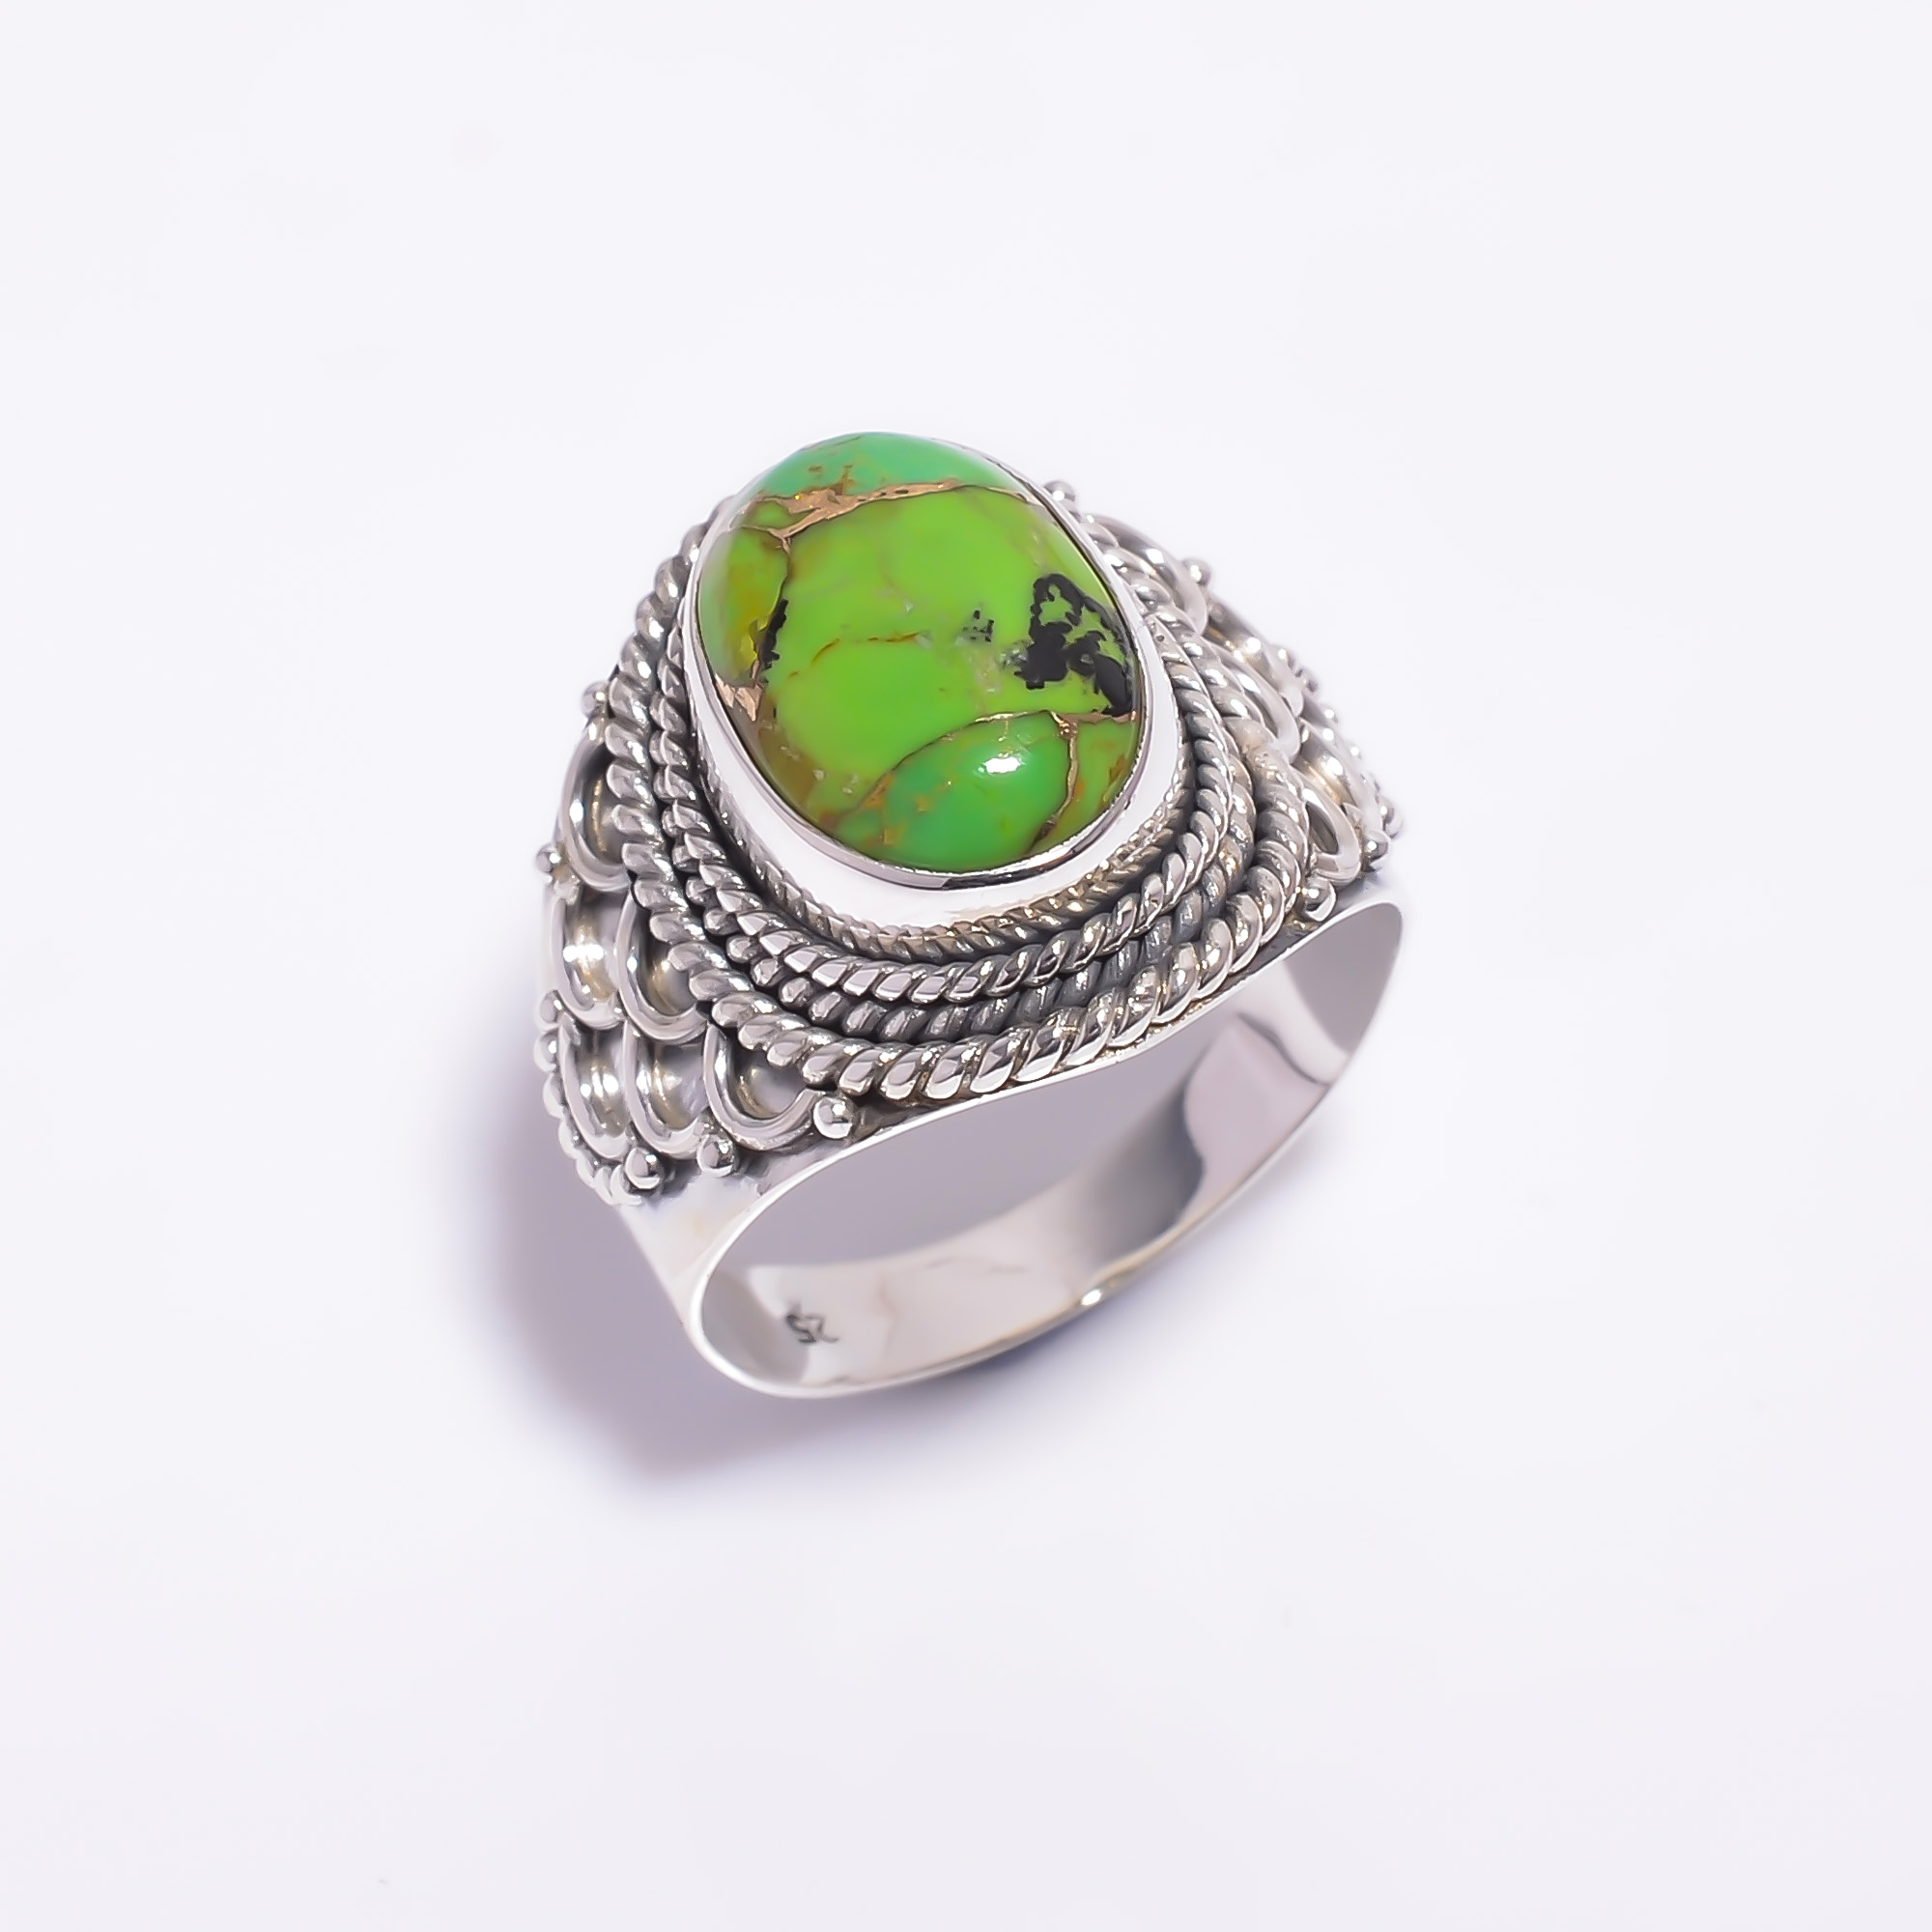 Green Copper Turquoise Gemstone 925 Sterling Silver Ring Size US 10.25